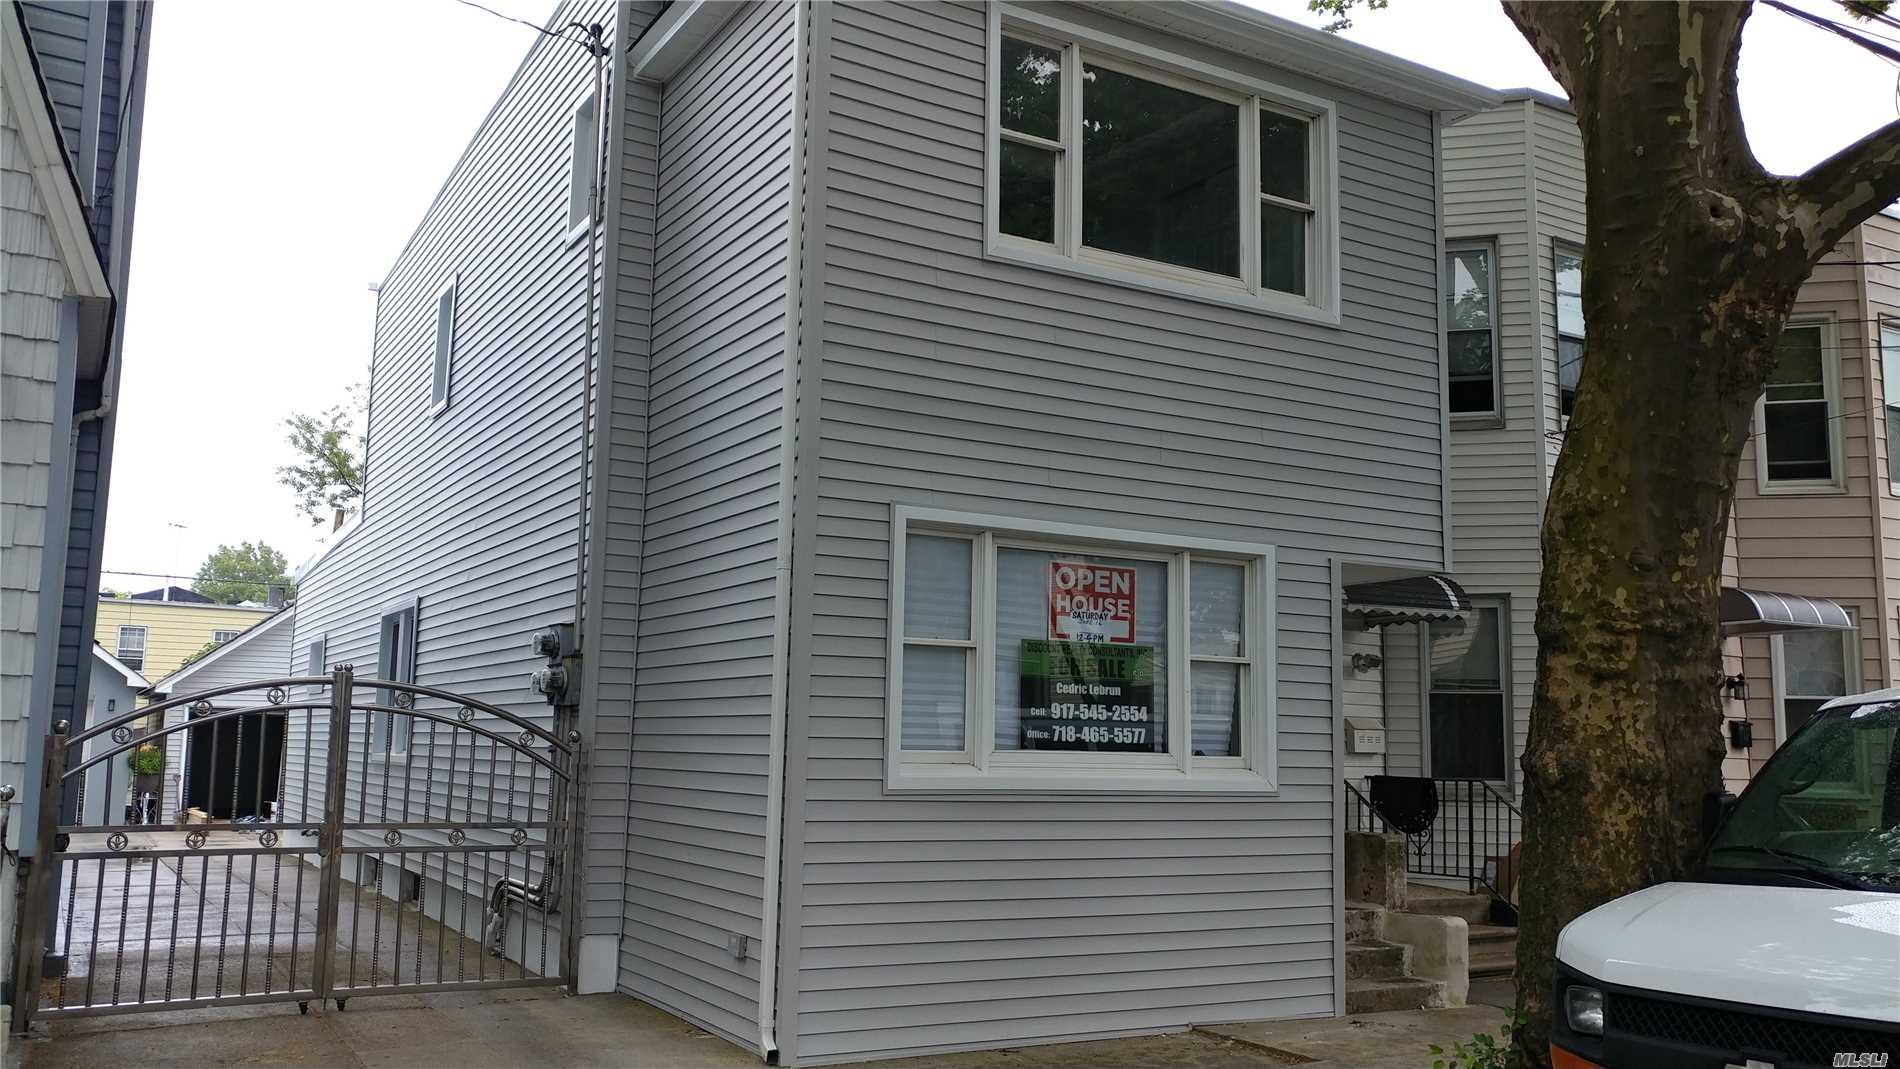 This Is A Beautiful 8 Room 3 Bedroom Home With 3 Full Baths, Wood Floors, Finished Basement, W/7 Foot Ceilings. Enjoy The Large Eat-In-Kitchen With Granite Counters And Stainless Steel Appliances. Wide Driveway And 3 Car Parking In Rear. Bus, And Shopping Very Close. 30 Minutes To Nyc. Don't Wait.